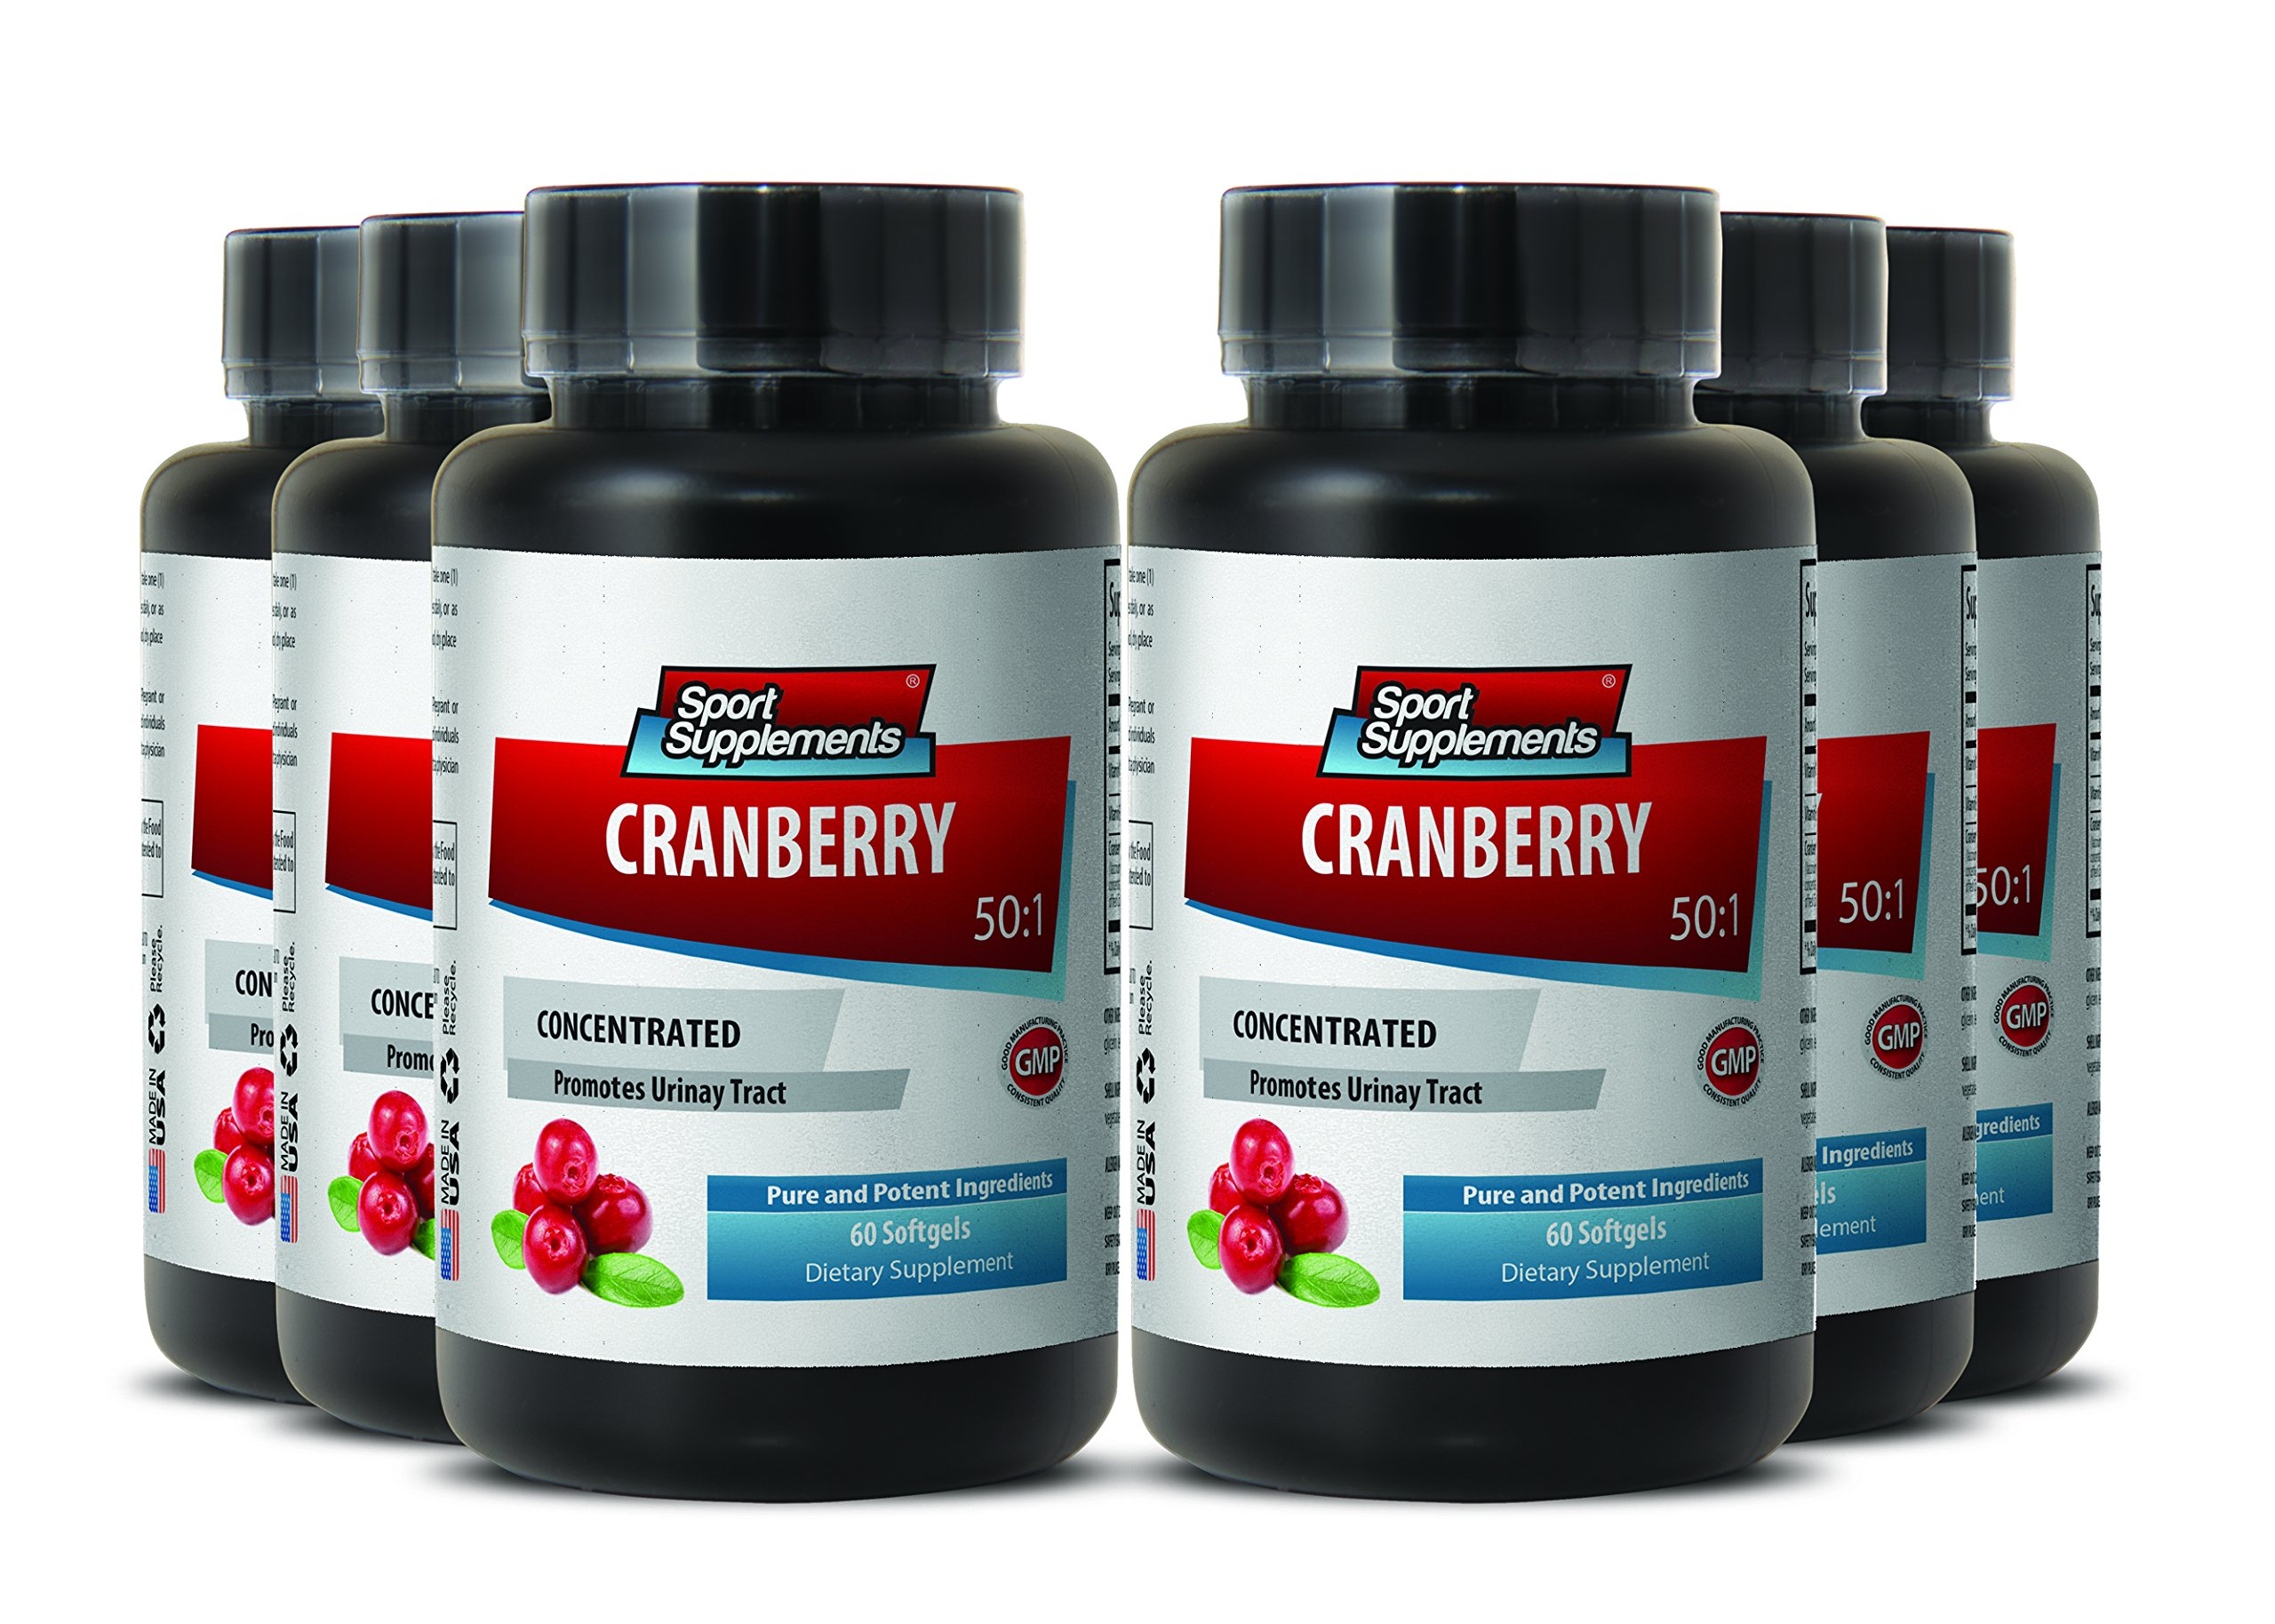 Cranberry Organic Pills - Cranberry Concentrated Extract 50 : 1 Concentrate Equivalent to 12.600mg - Cranberry Supplement for Healthy Urinary System (6 Bottles)